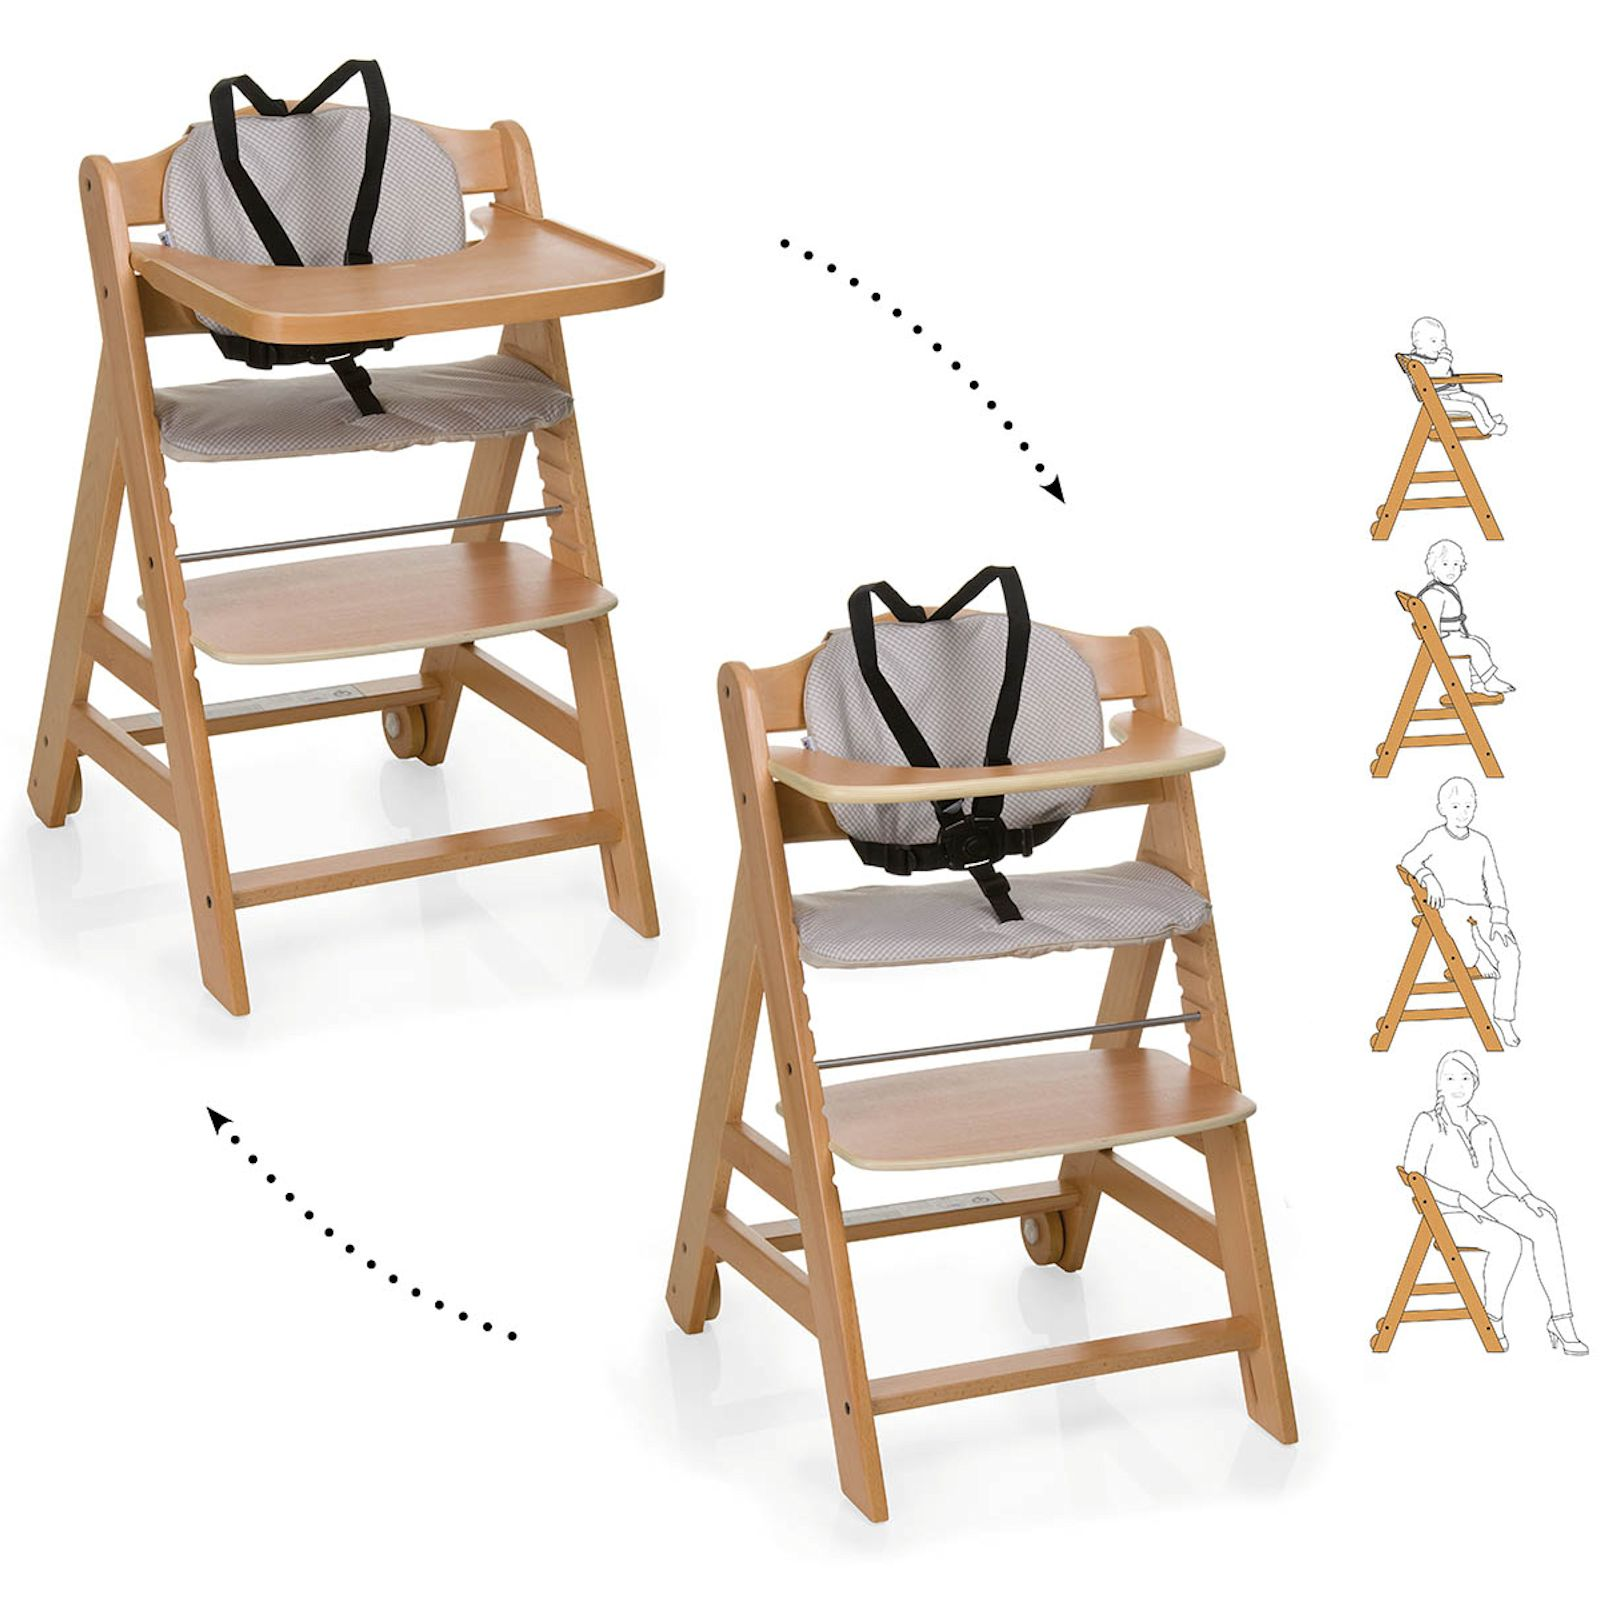 Wooden High Chair Hauck Beta 43 Wooden Highchair Natural Buy At Online4baby